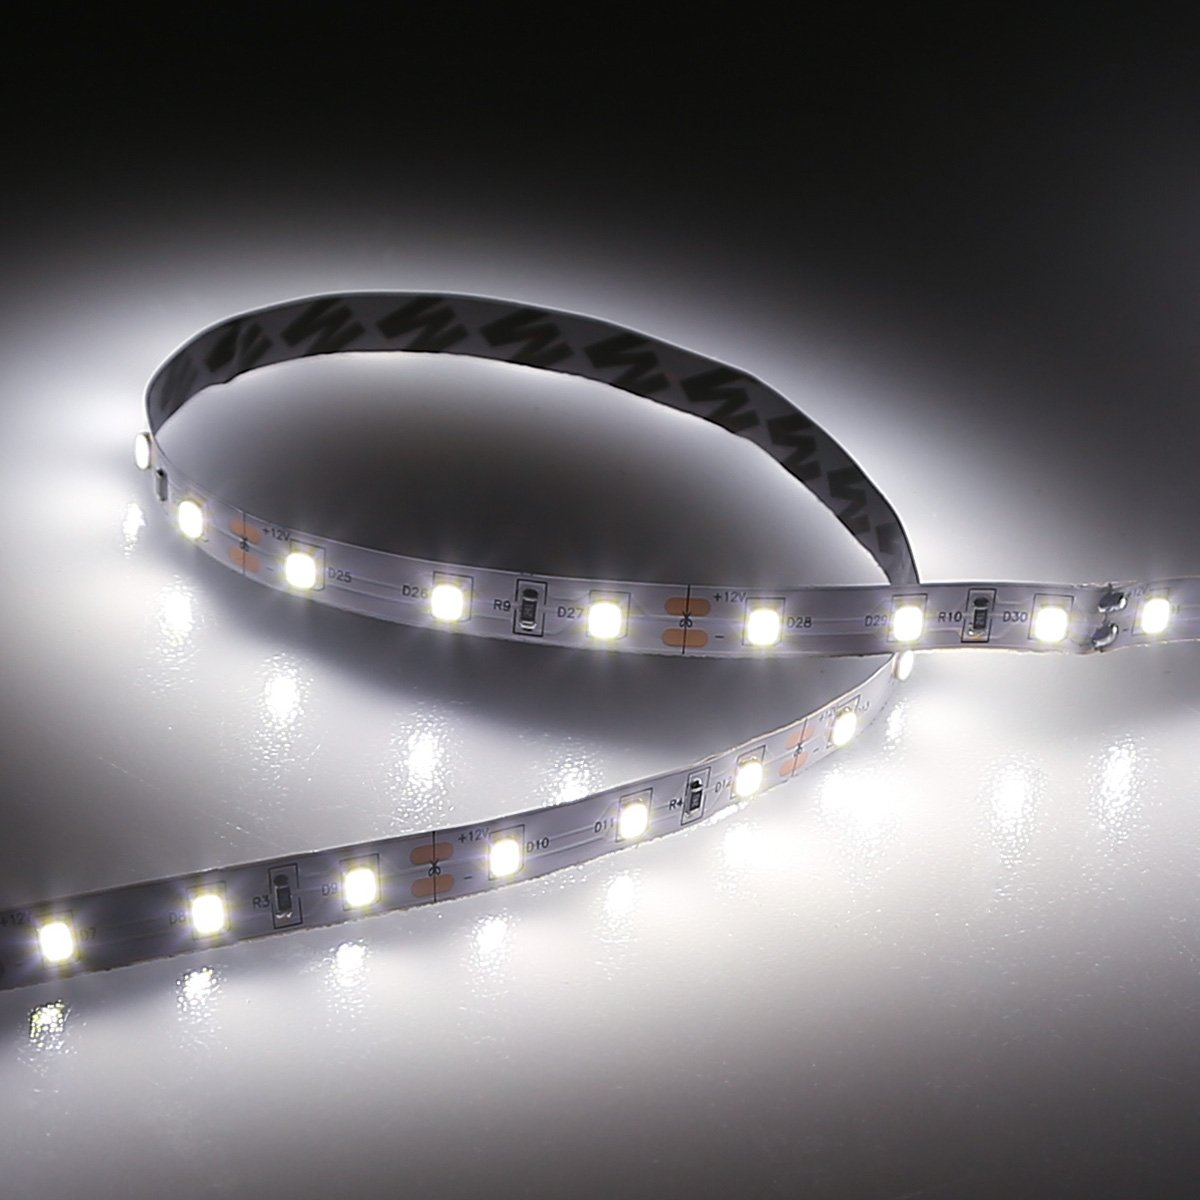 Amazon le 164ft led flexible light strip 300 units smd 2835 amazon le 164ft led flexible light strip 300 units smd 2835 leds 12v dc non waterproof light strips led ribbon diy christmas holiday home kitchen mozeypictures Gallery